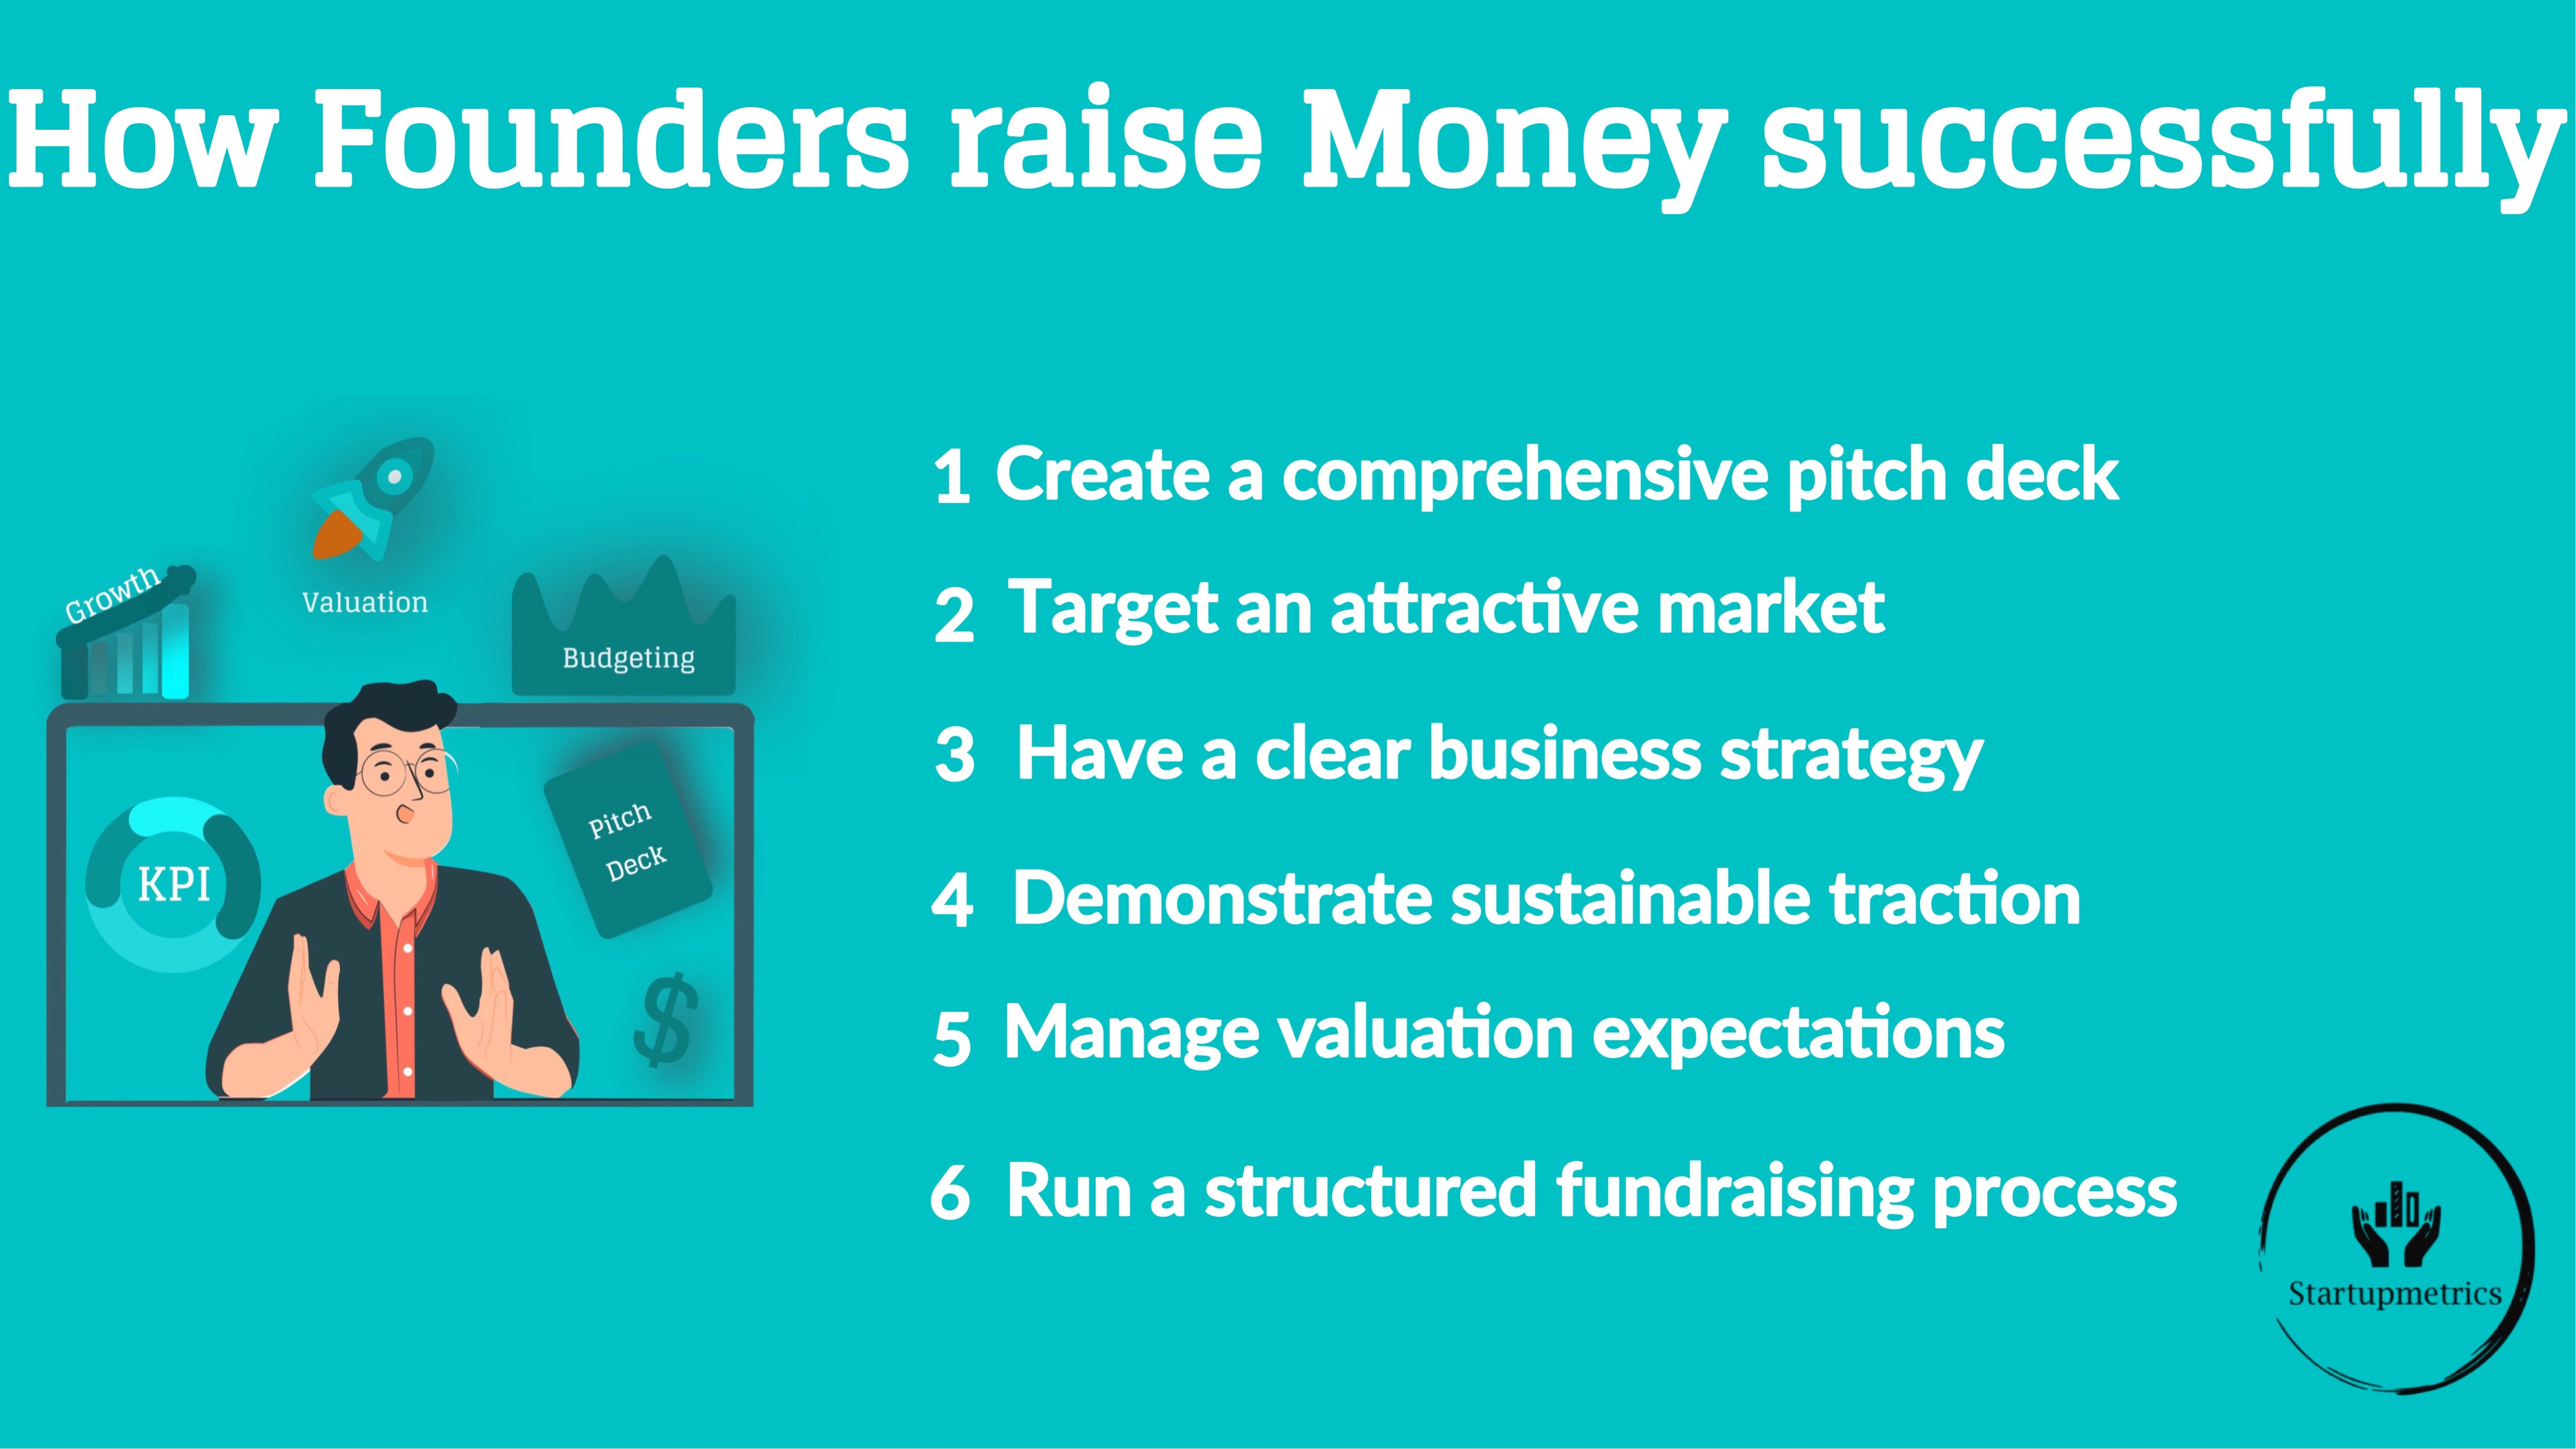 How Founders raise Money successfully